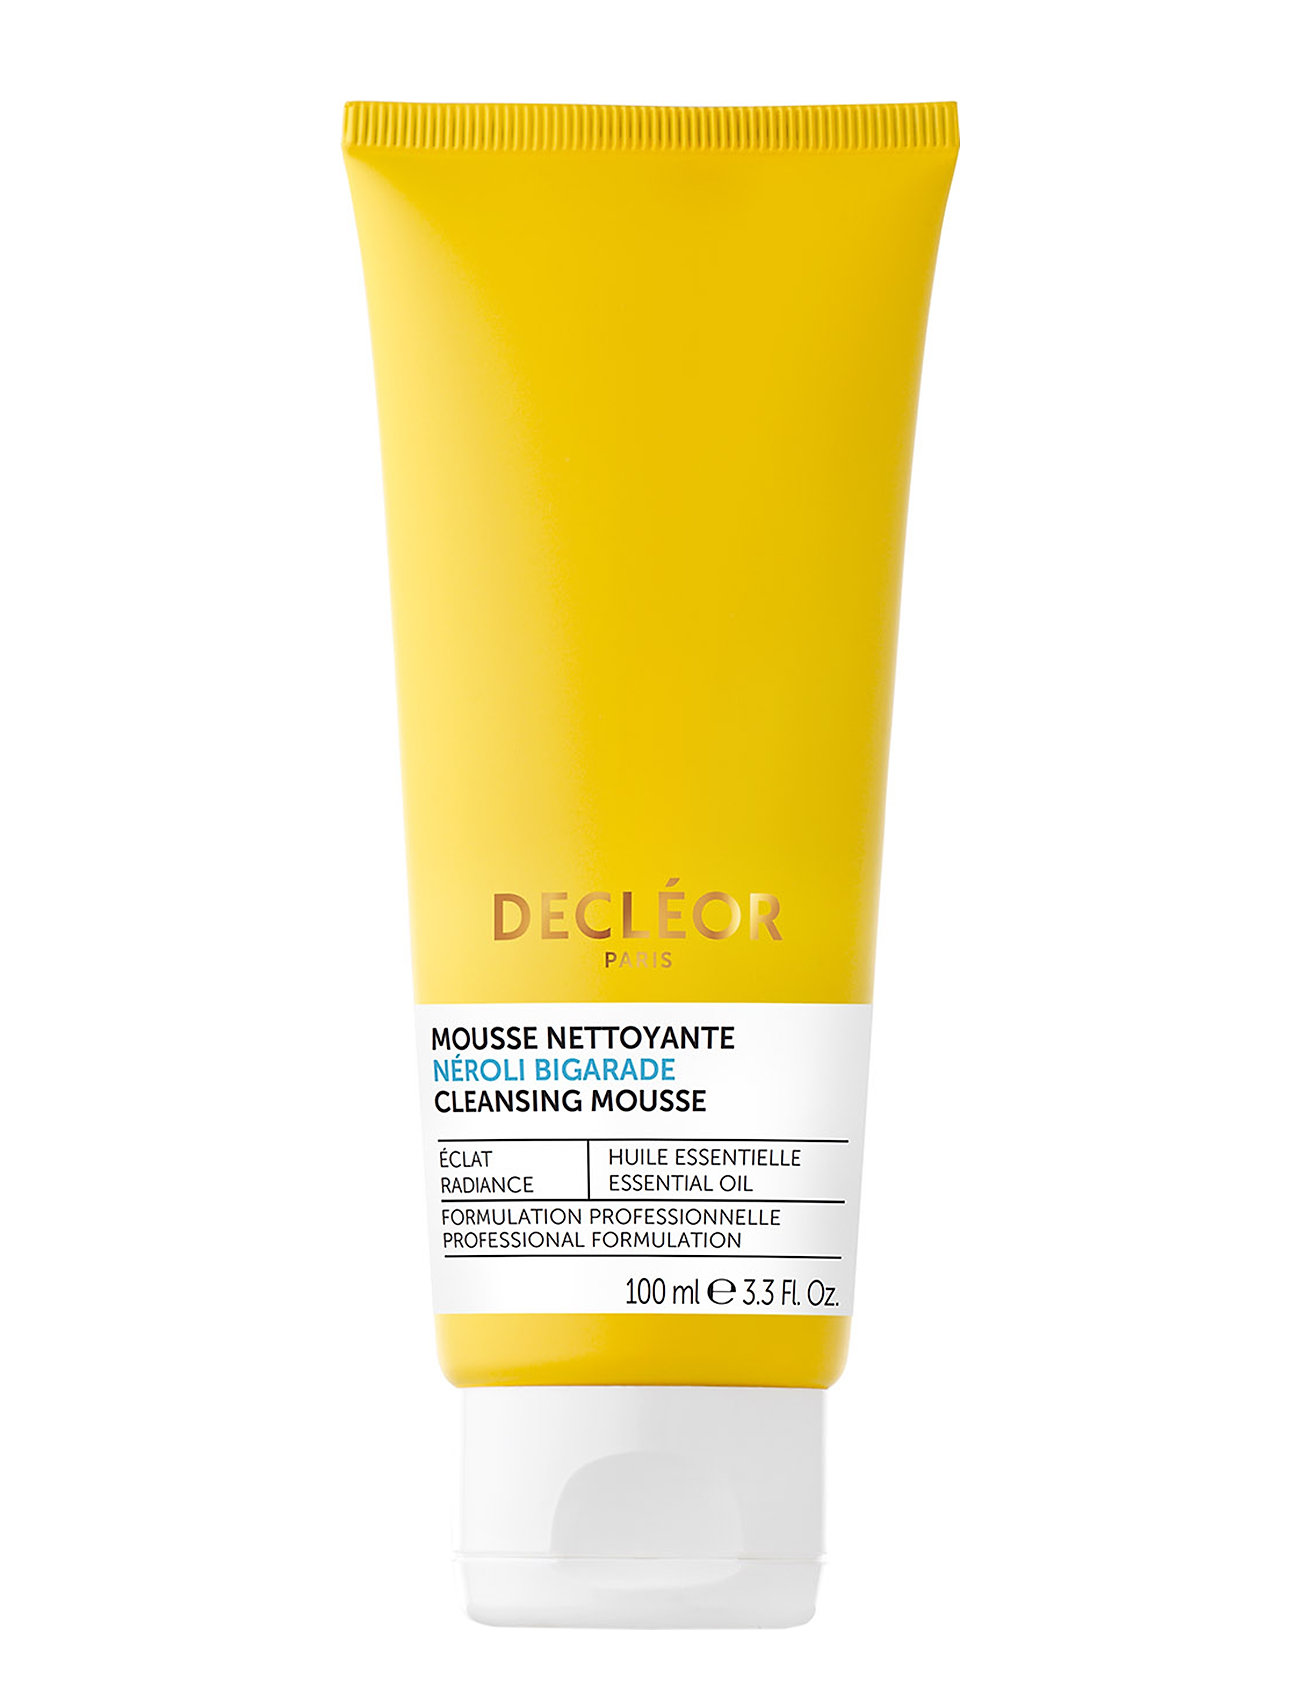 Decléor Neroli Bigarade Cleansing Mousse - CLEAR